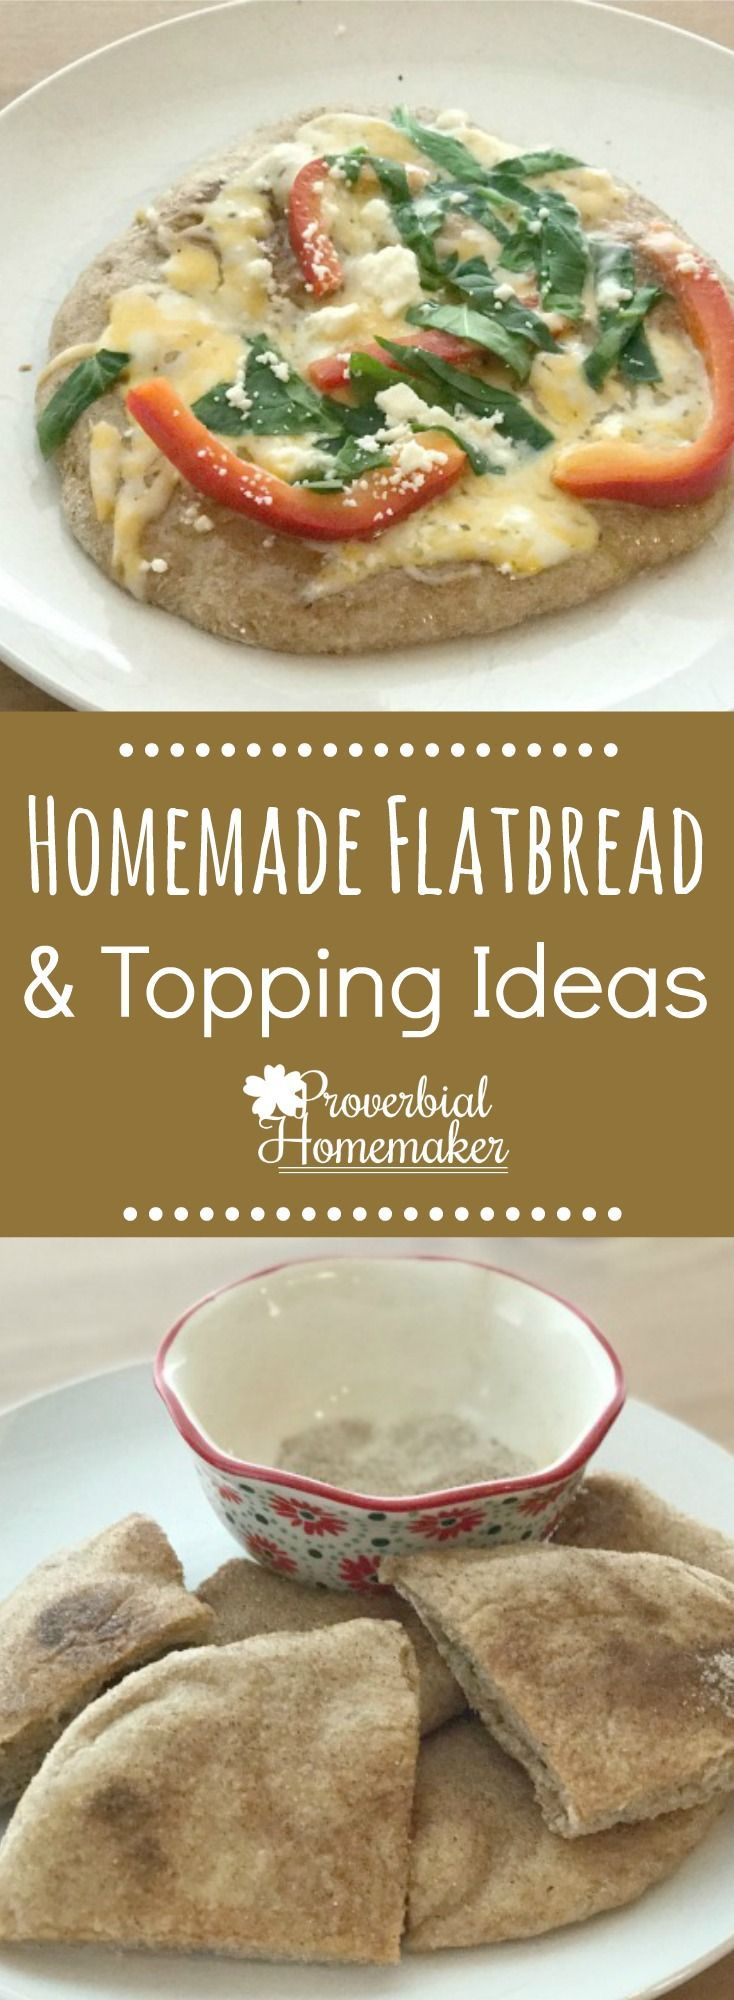 17 best images about family recipes on pinterest freezers